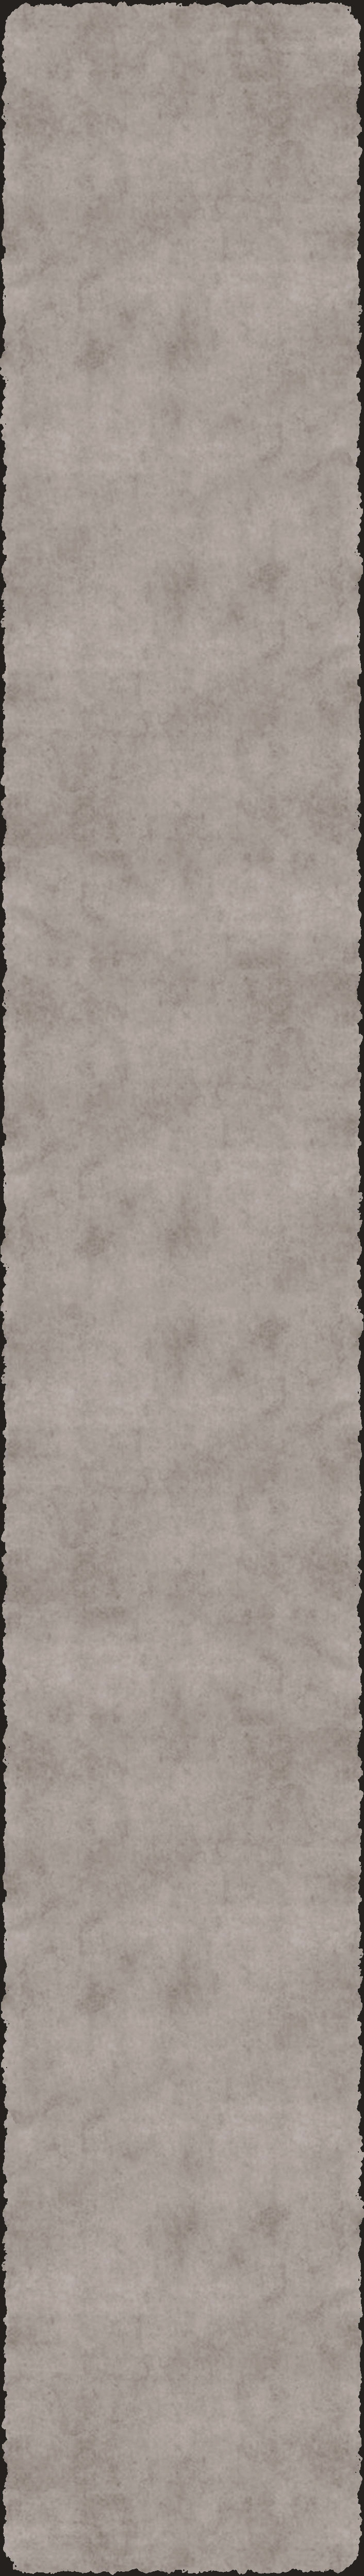 Parchment Background Image for My Projects: Screenshots, Page 2 on FlightToAtlantis.net